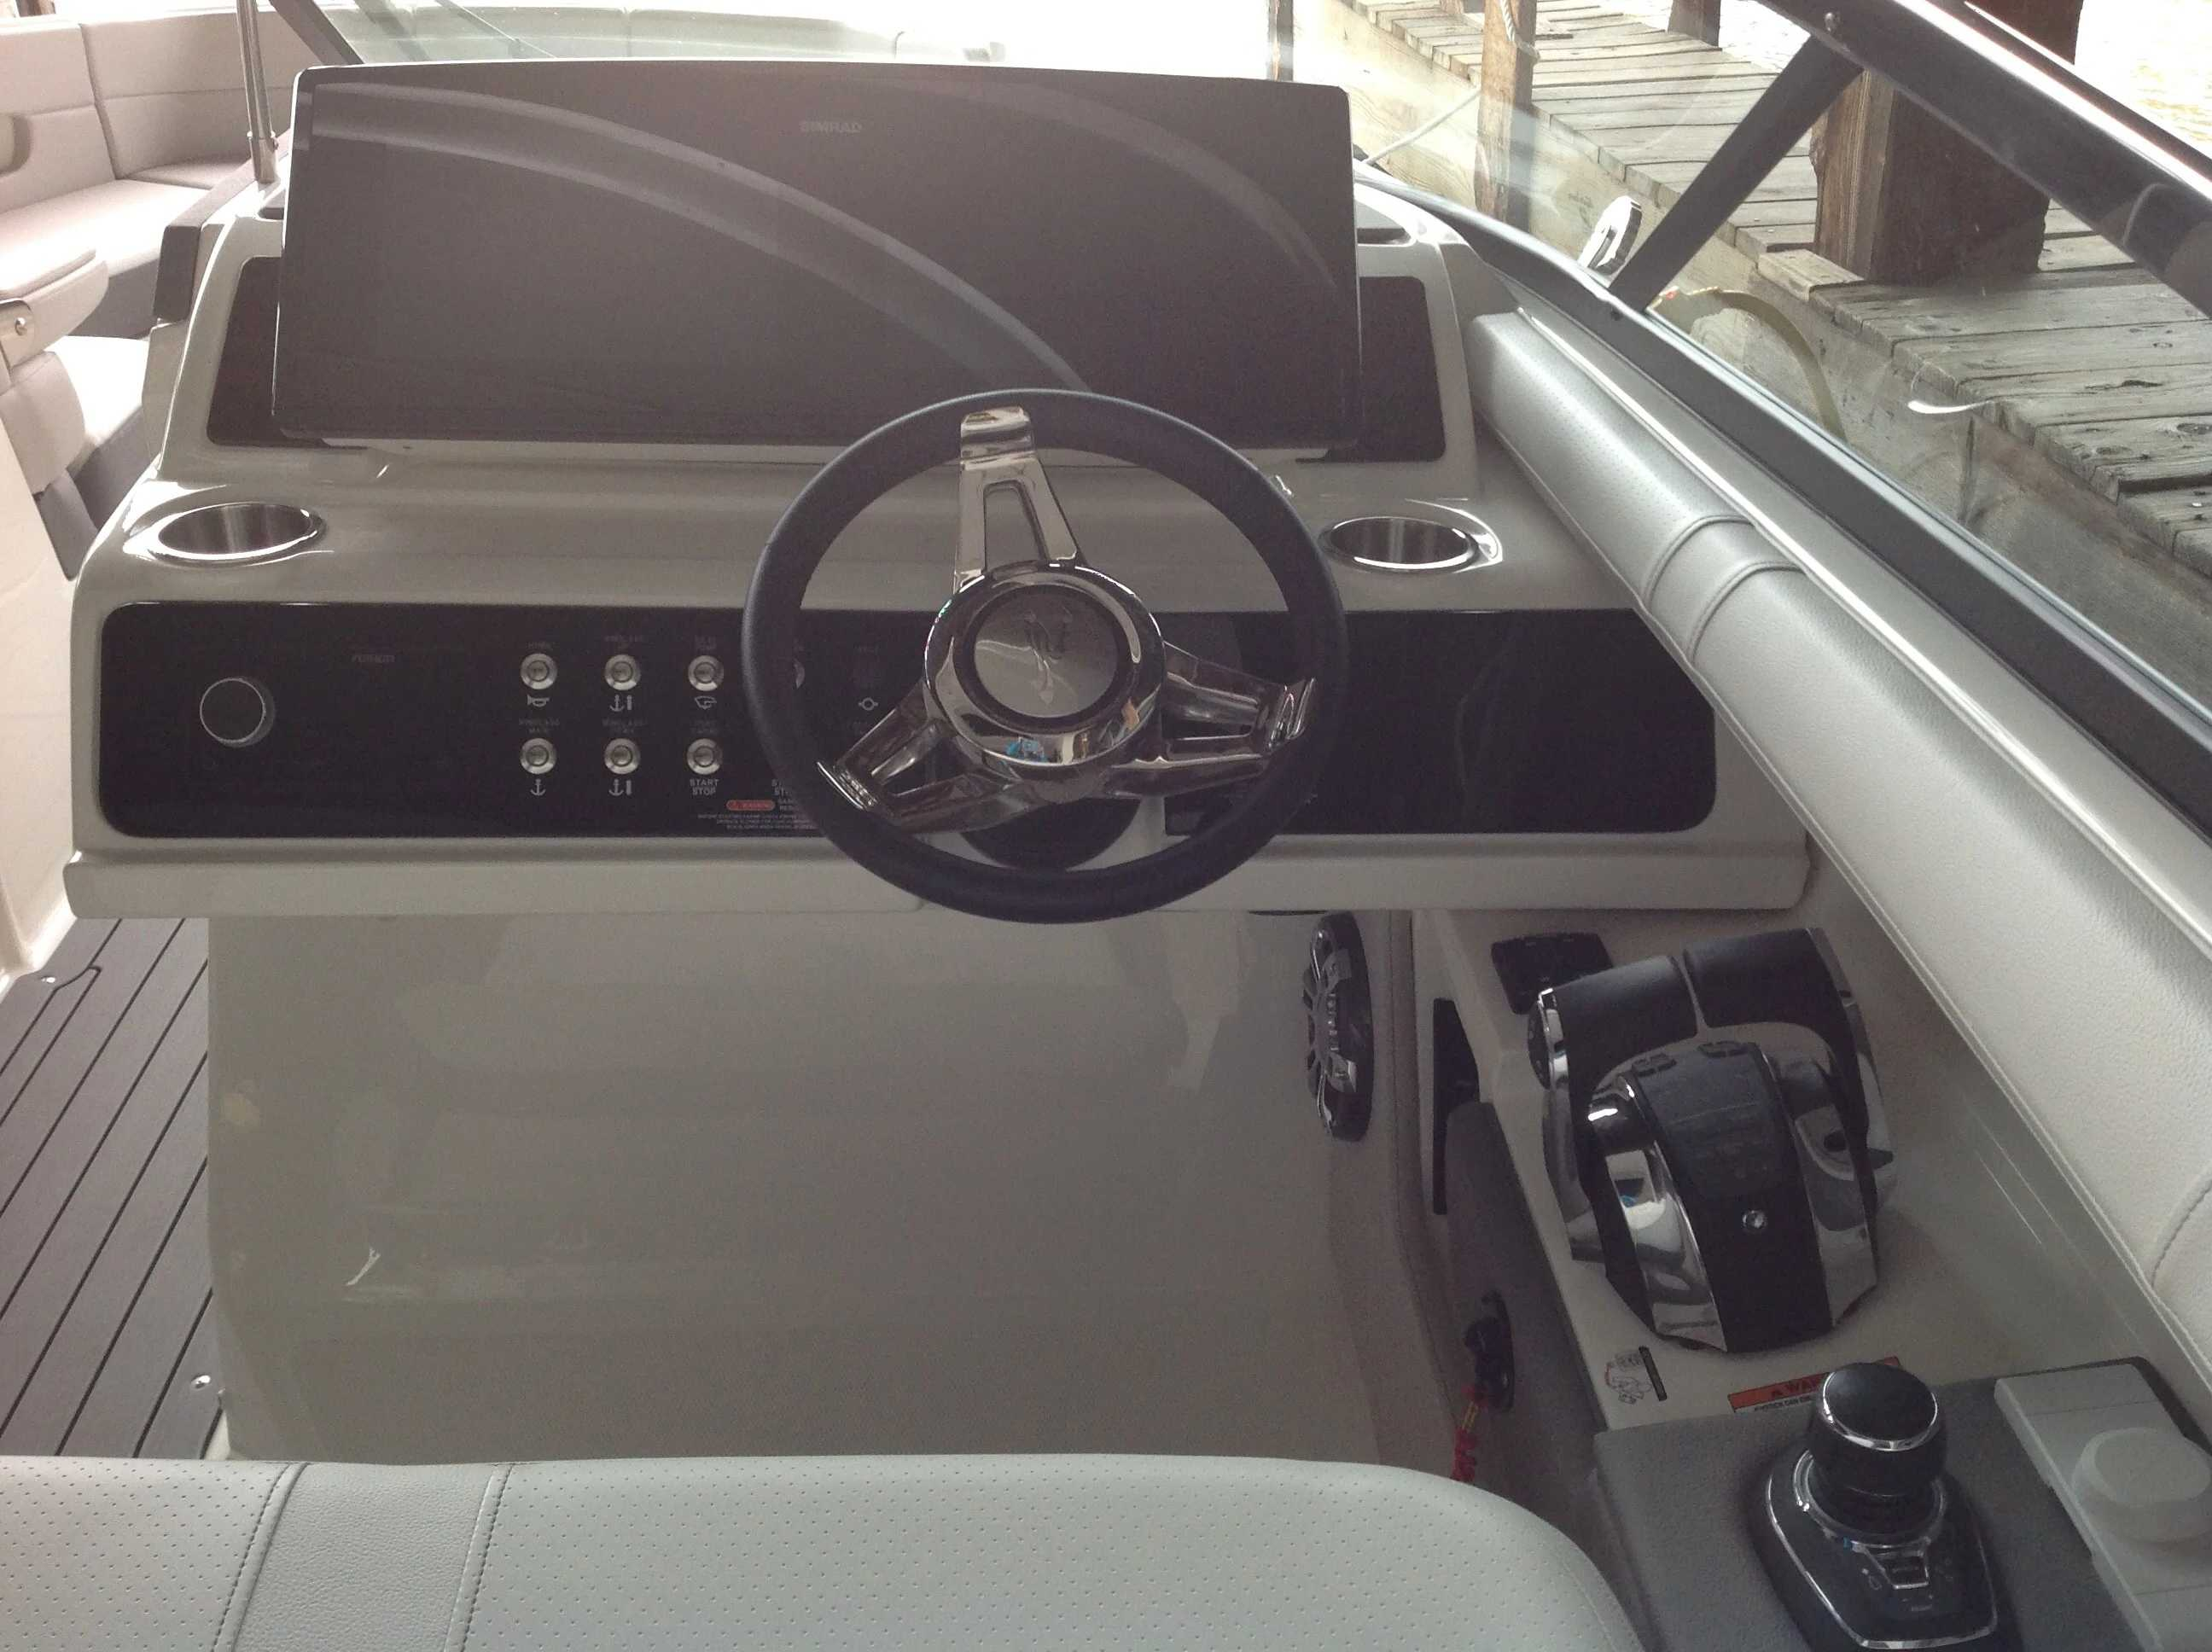 2021 Sea Ray boat for sale, model of the boat is 310 SLX & Image # 11 of 20